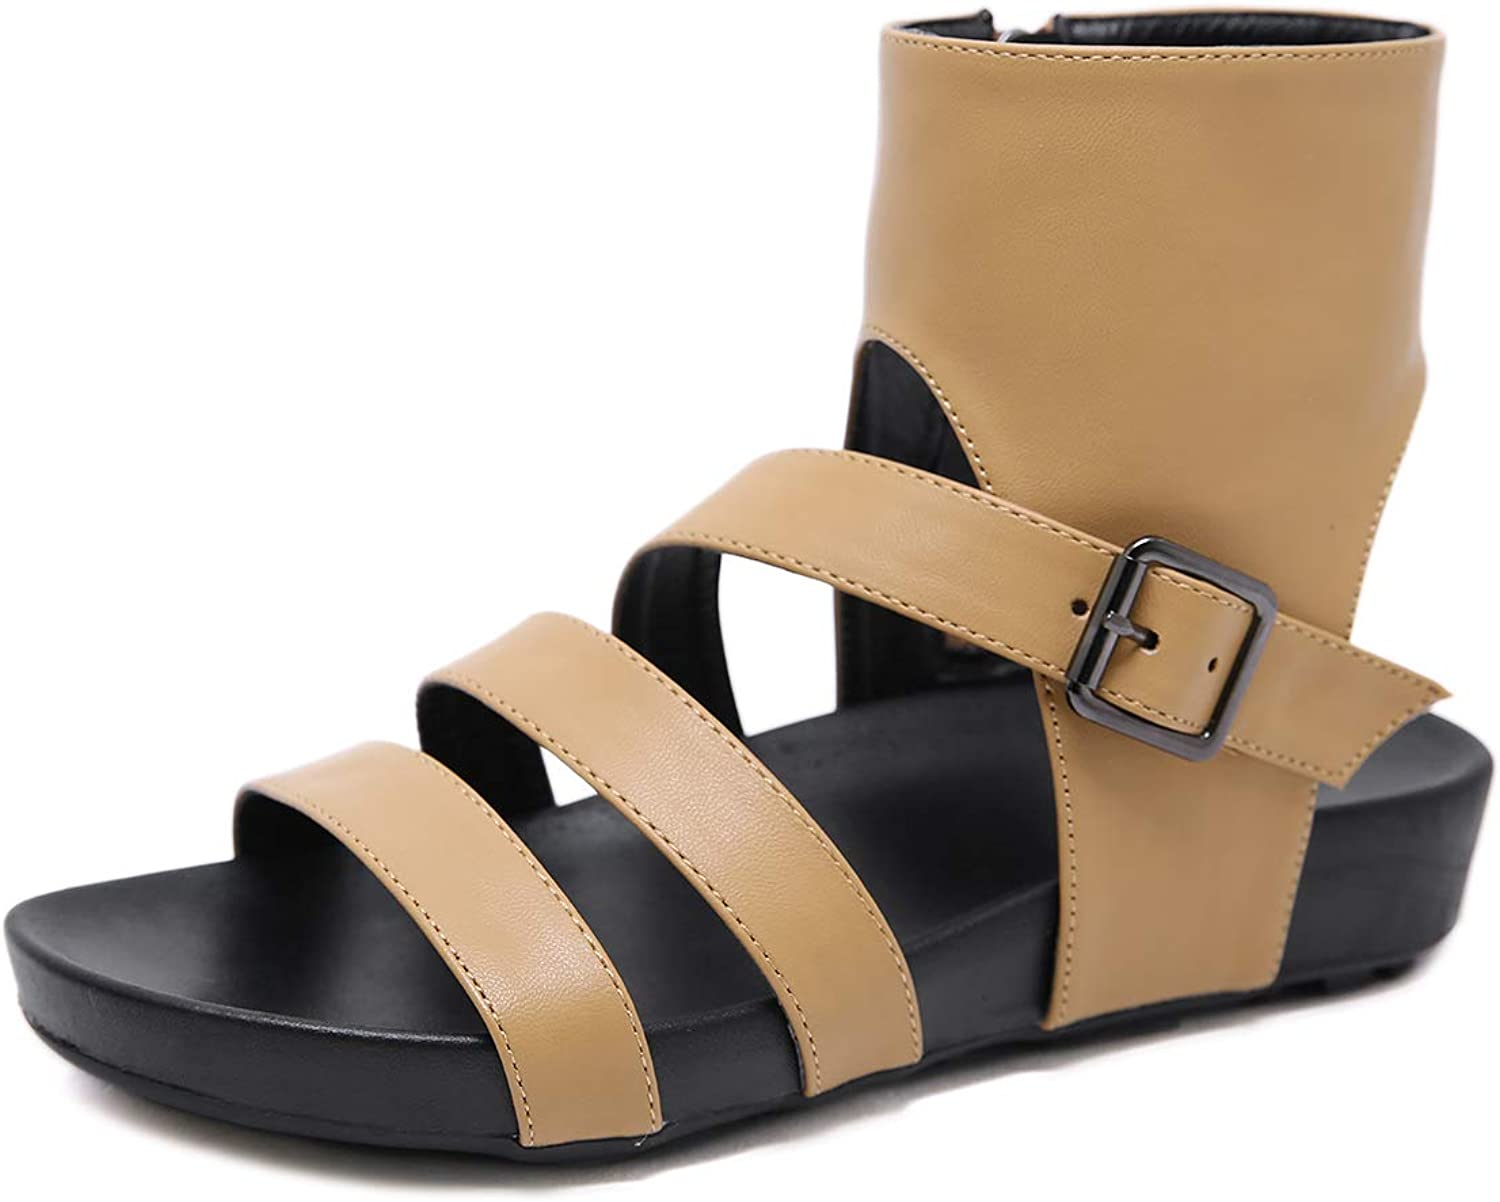 Soulength Women's Open Toe Leather Sandals Summer Fashion Wedge Flat Sandals(808-2,Black)